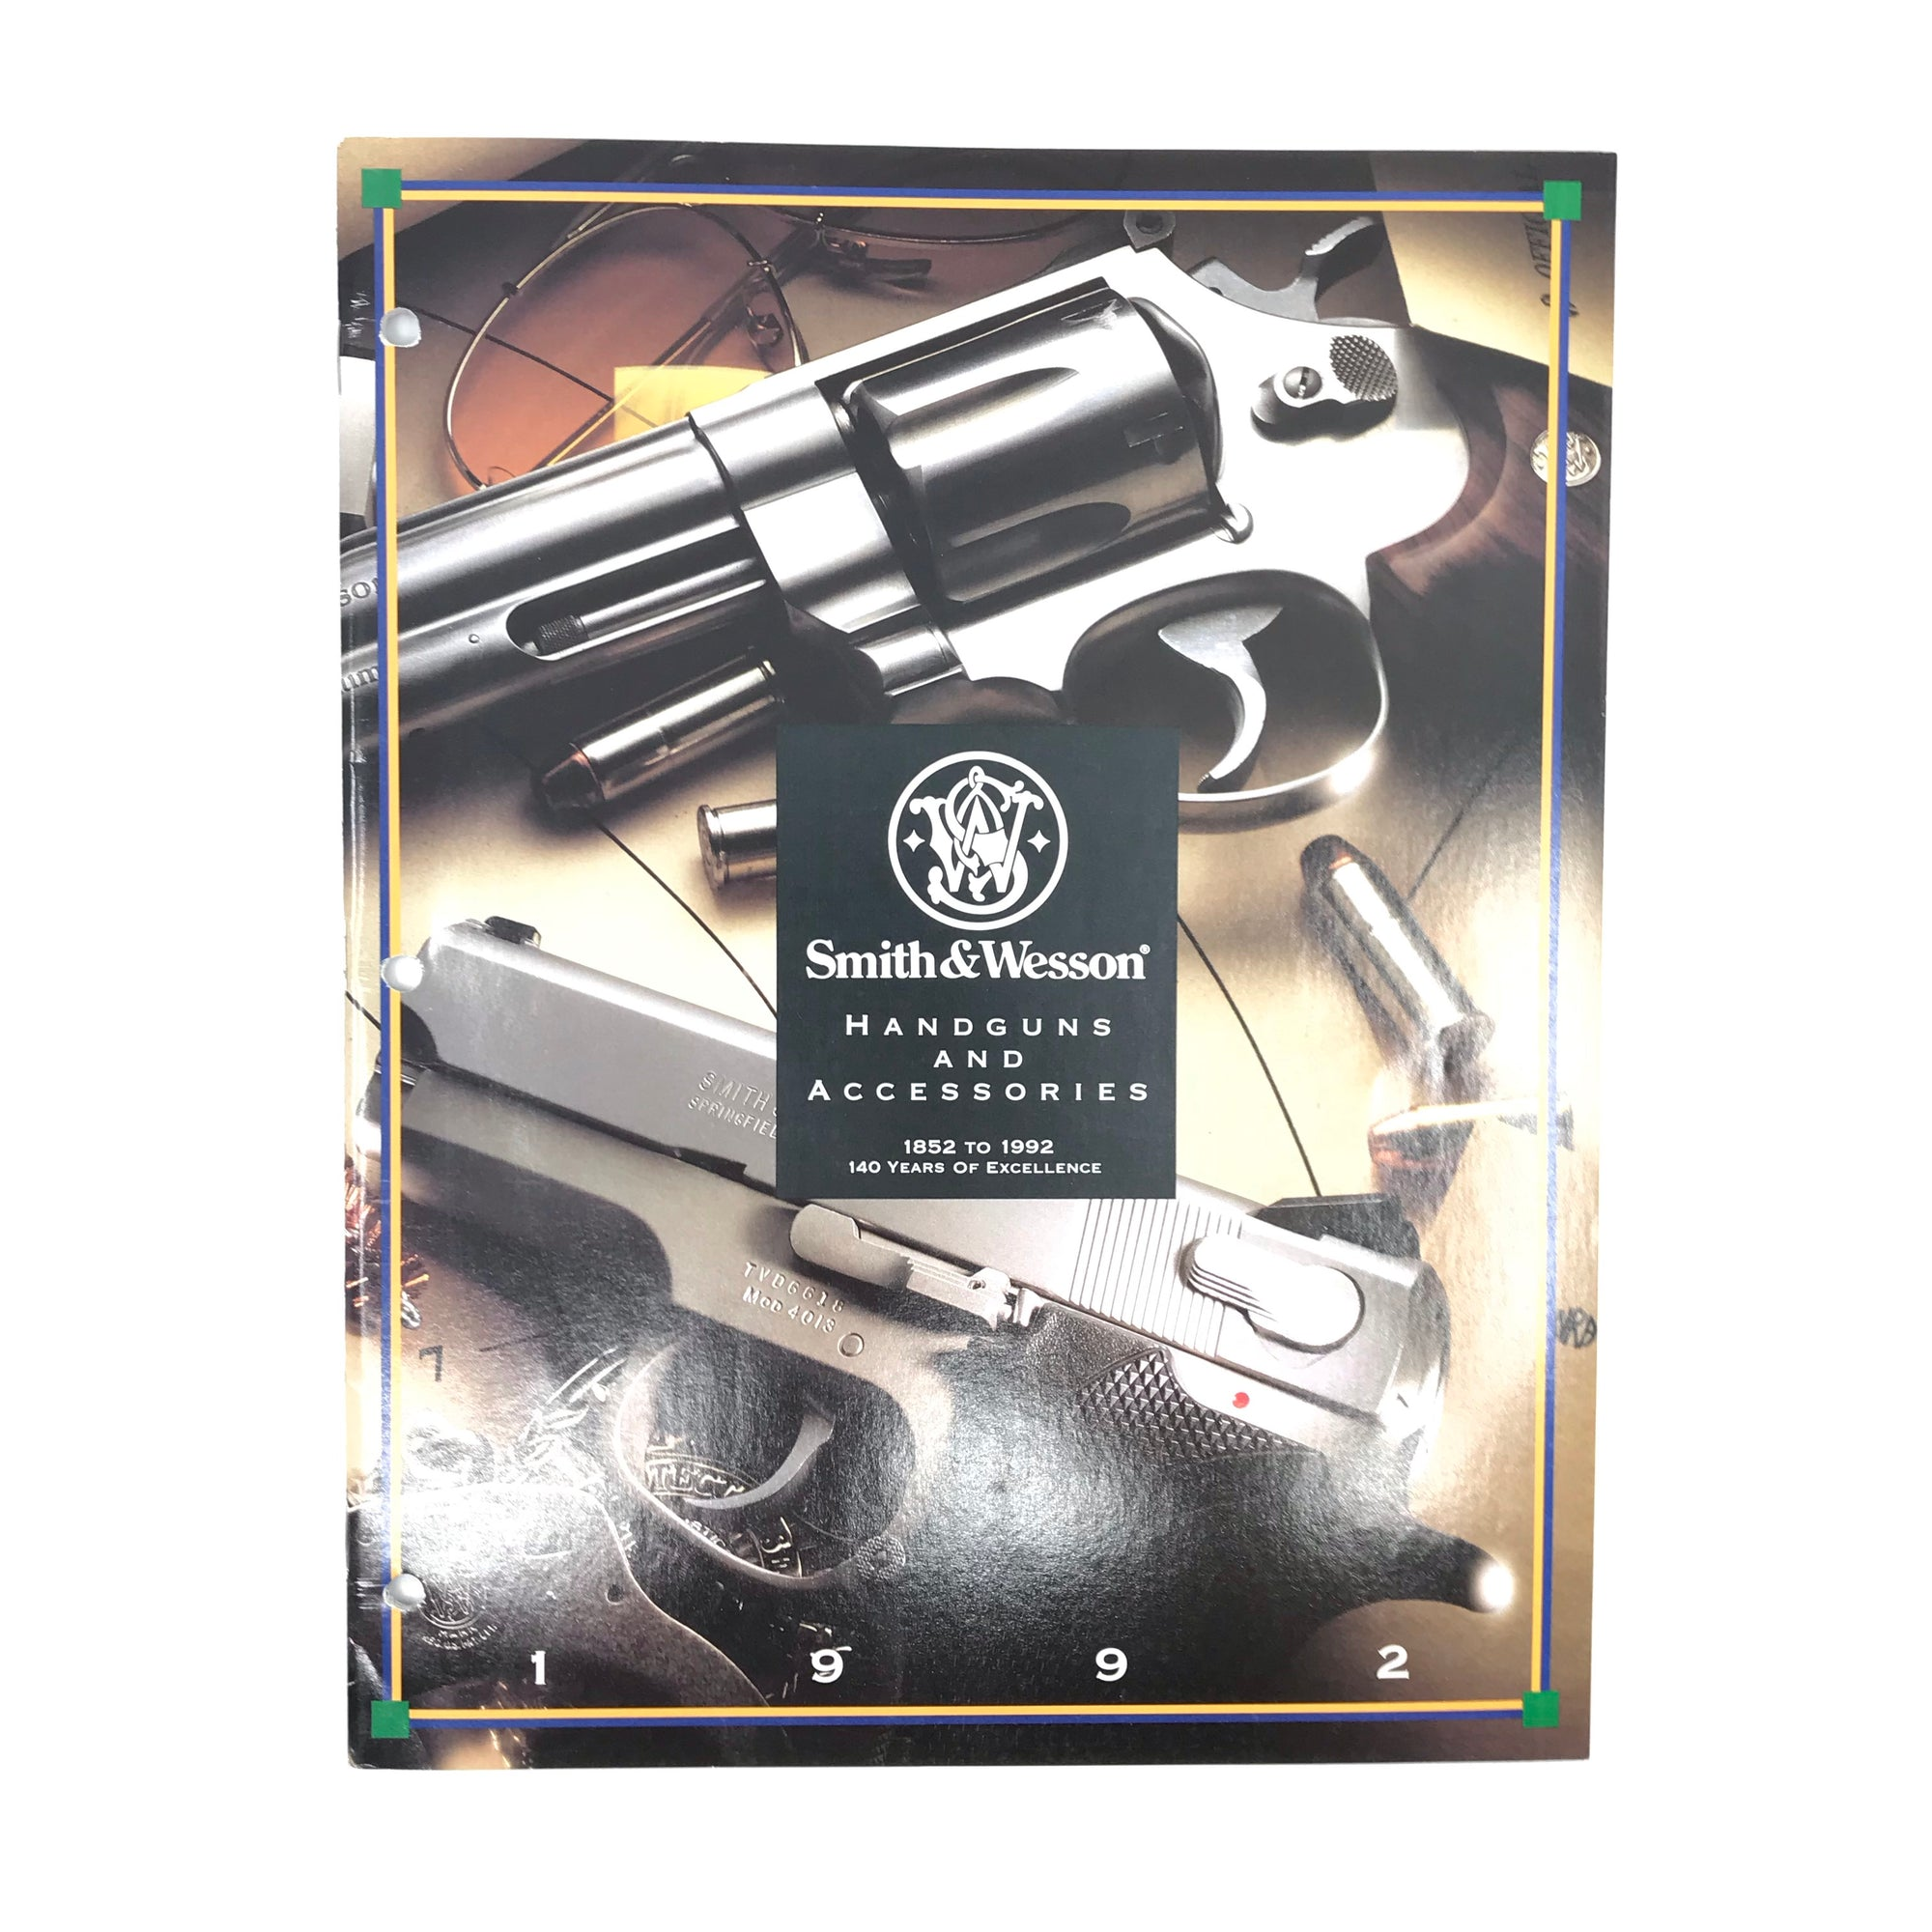 1992 Smith & Wesson Handguns & Accessories Catalogue